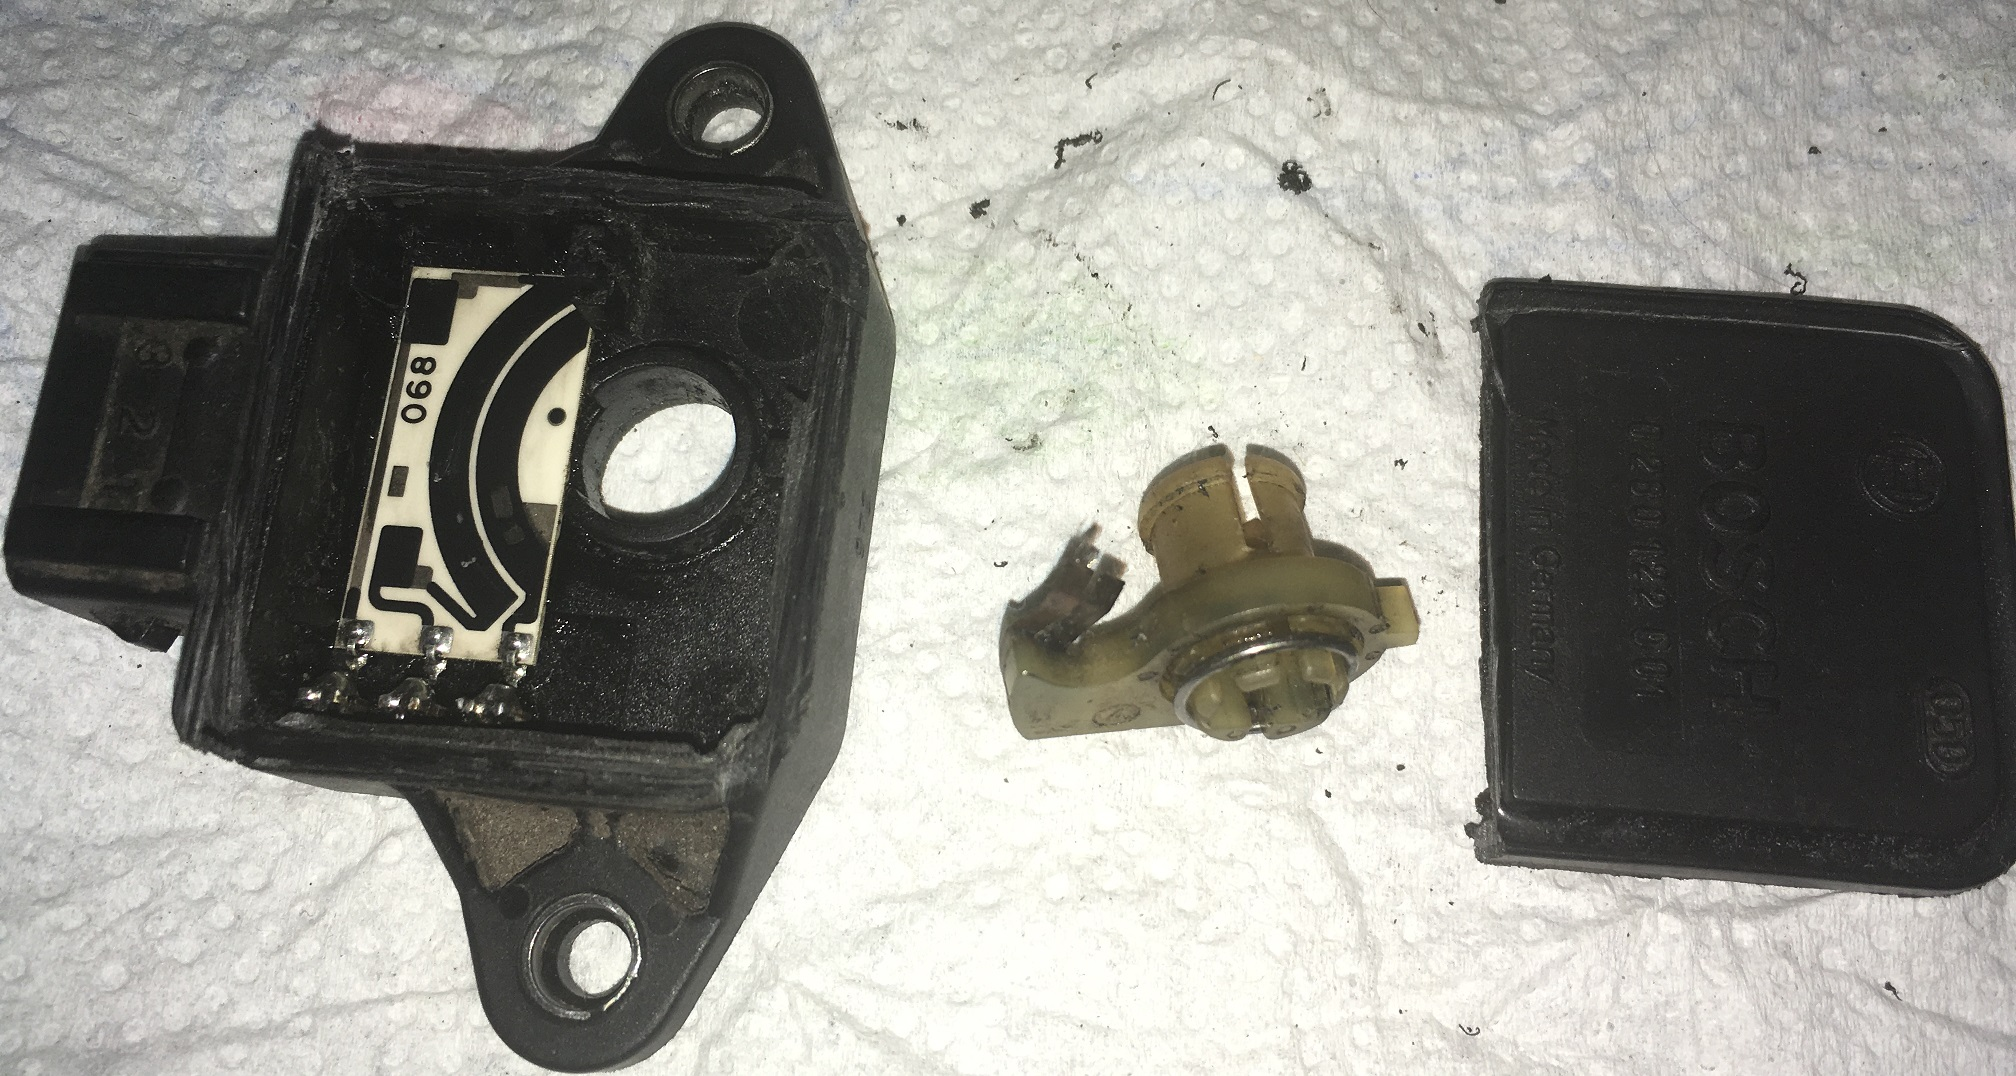 Bosch TPS disassembled